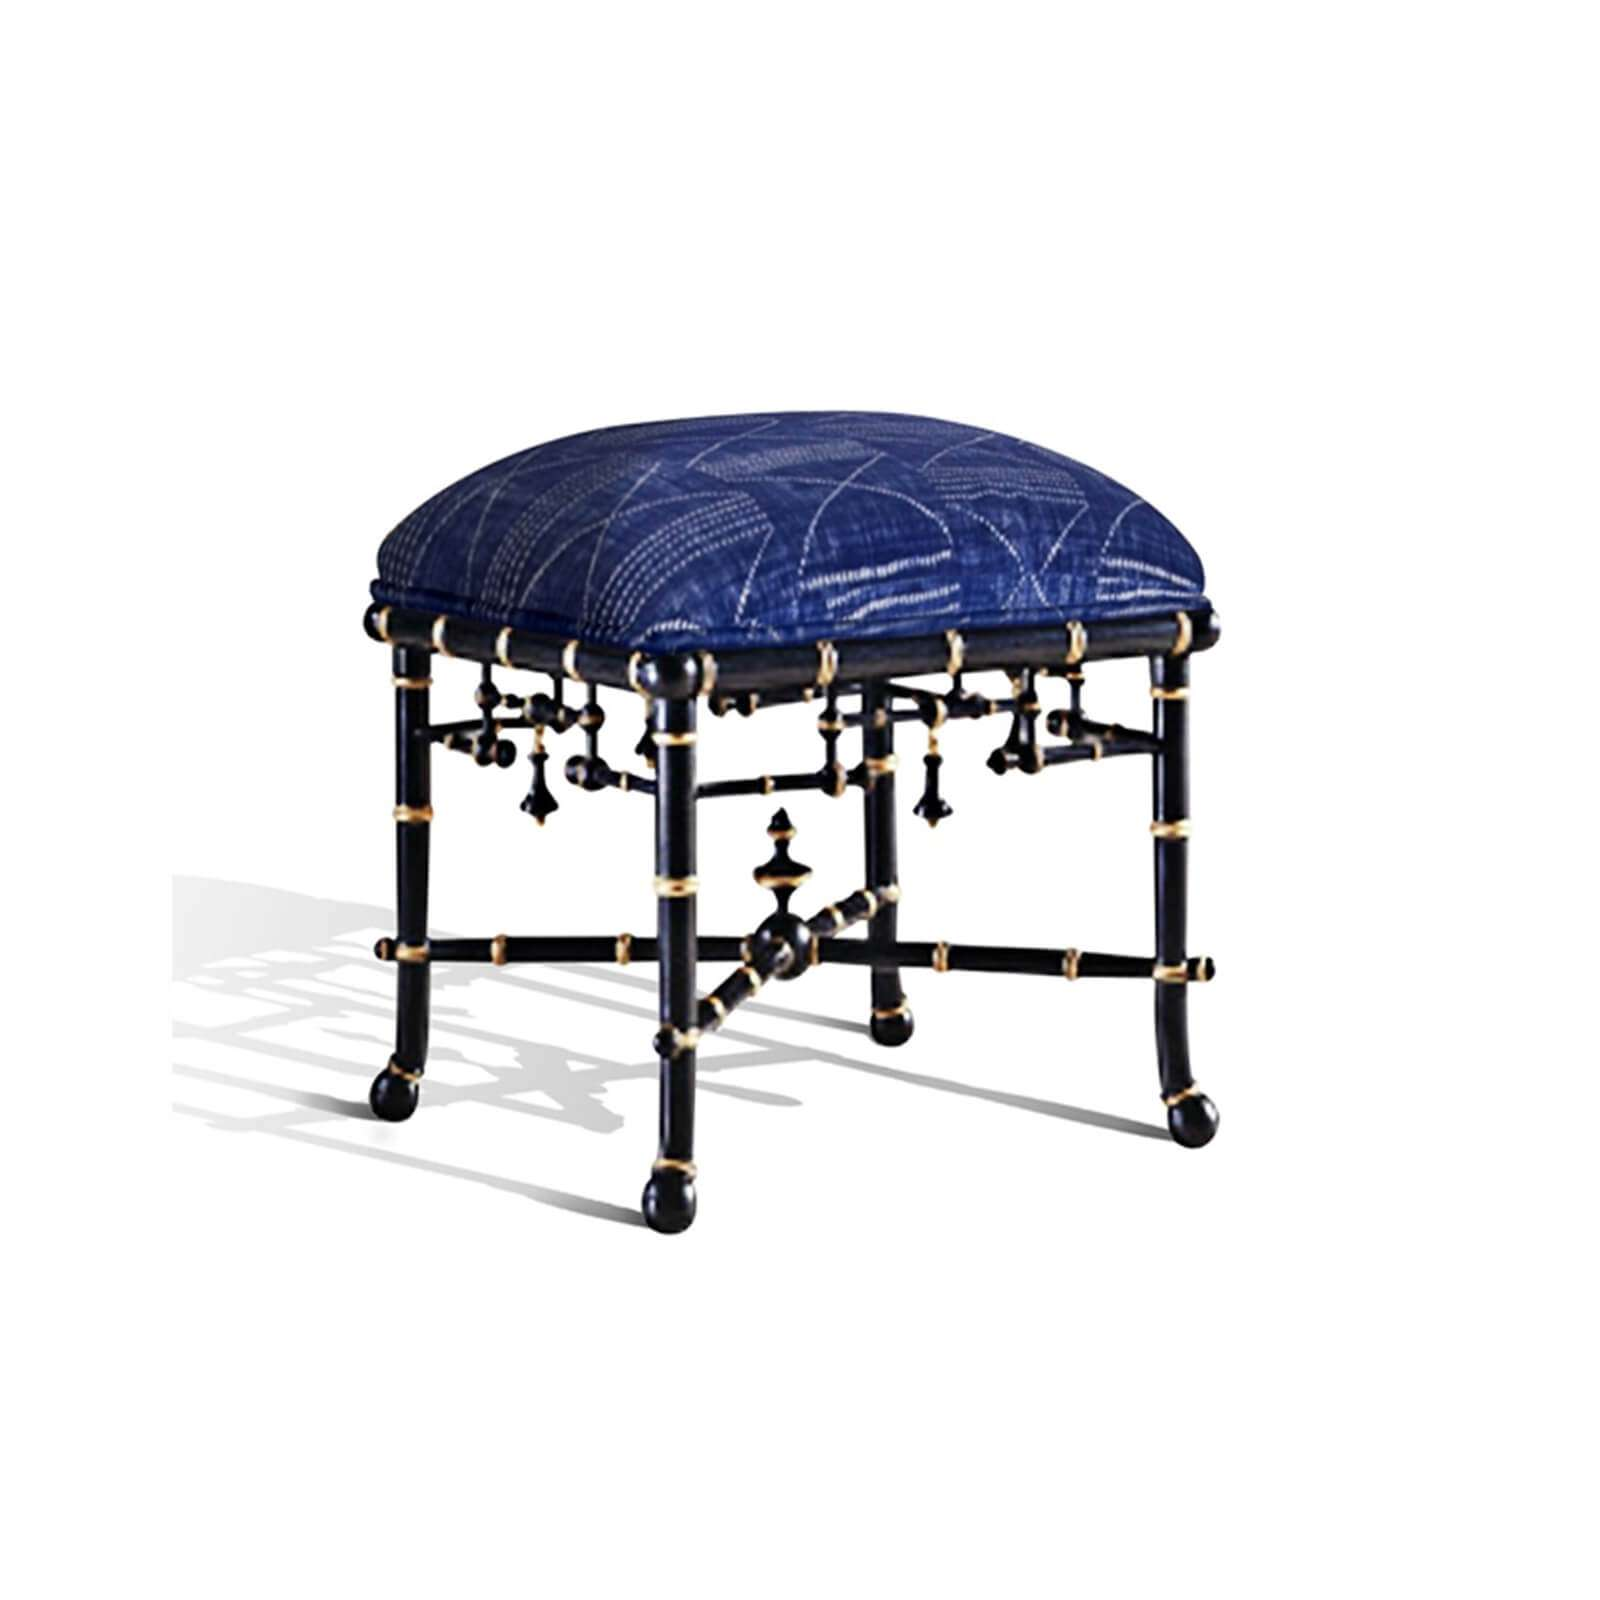 MANDARIN OTTOMAN CUSTOM 2 - STUART MEMBERY HOME COLLECTION